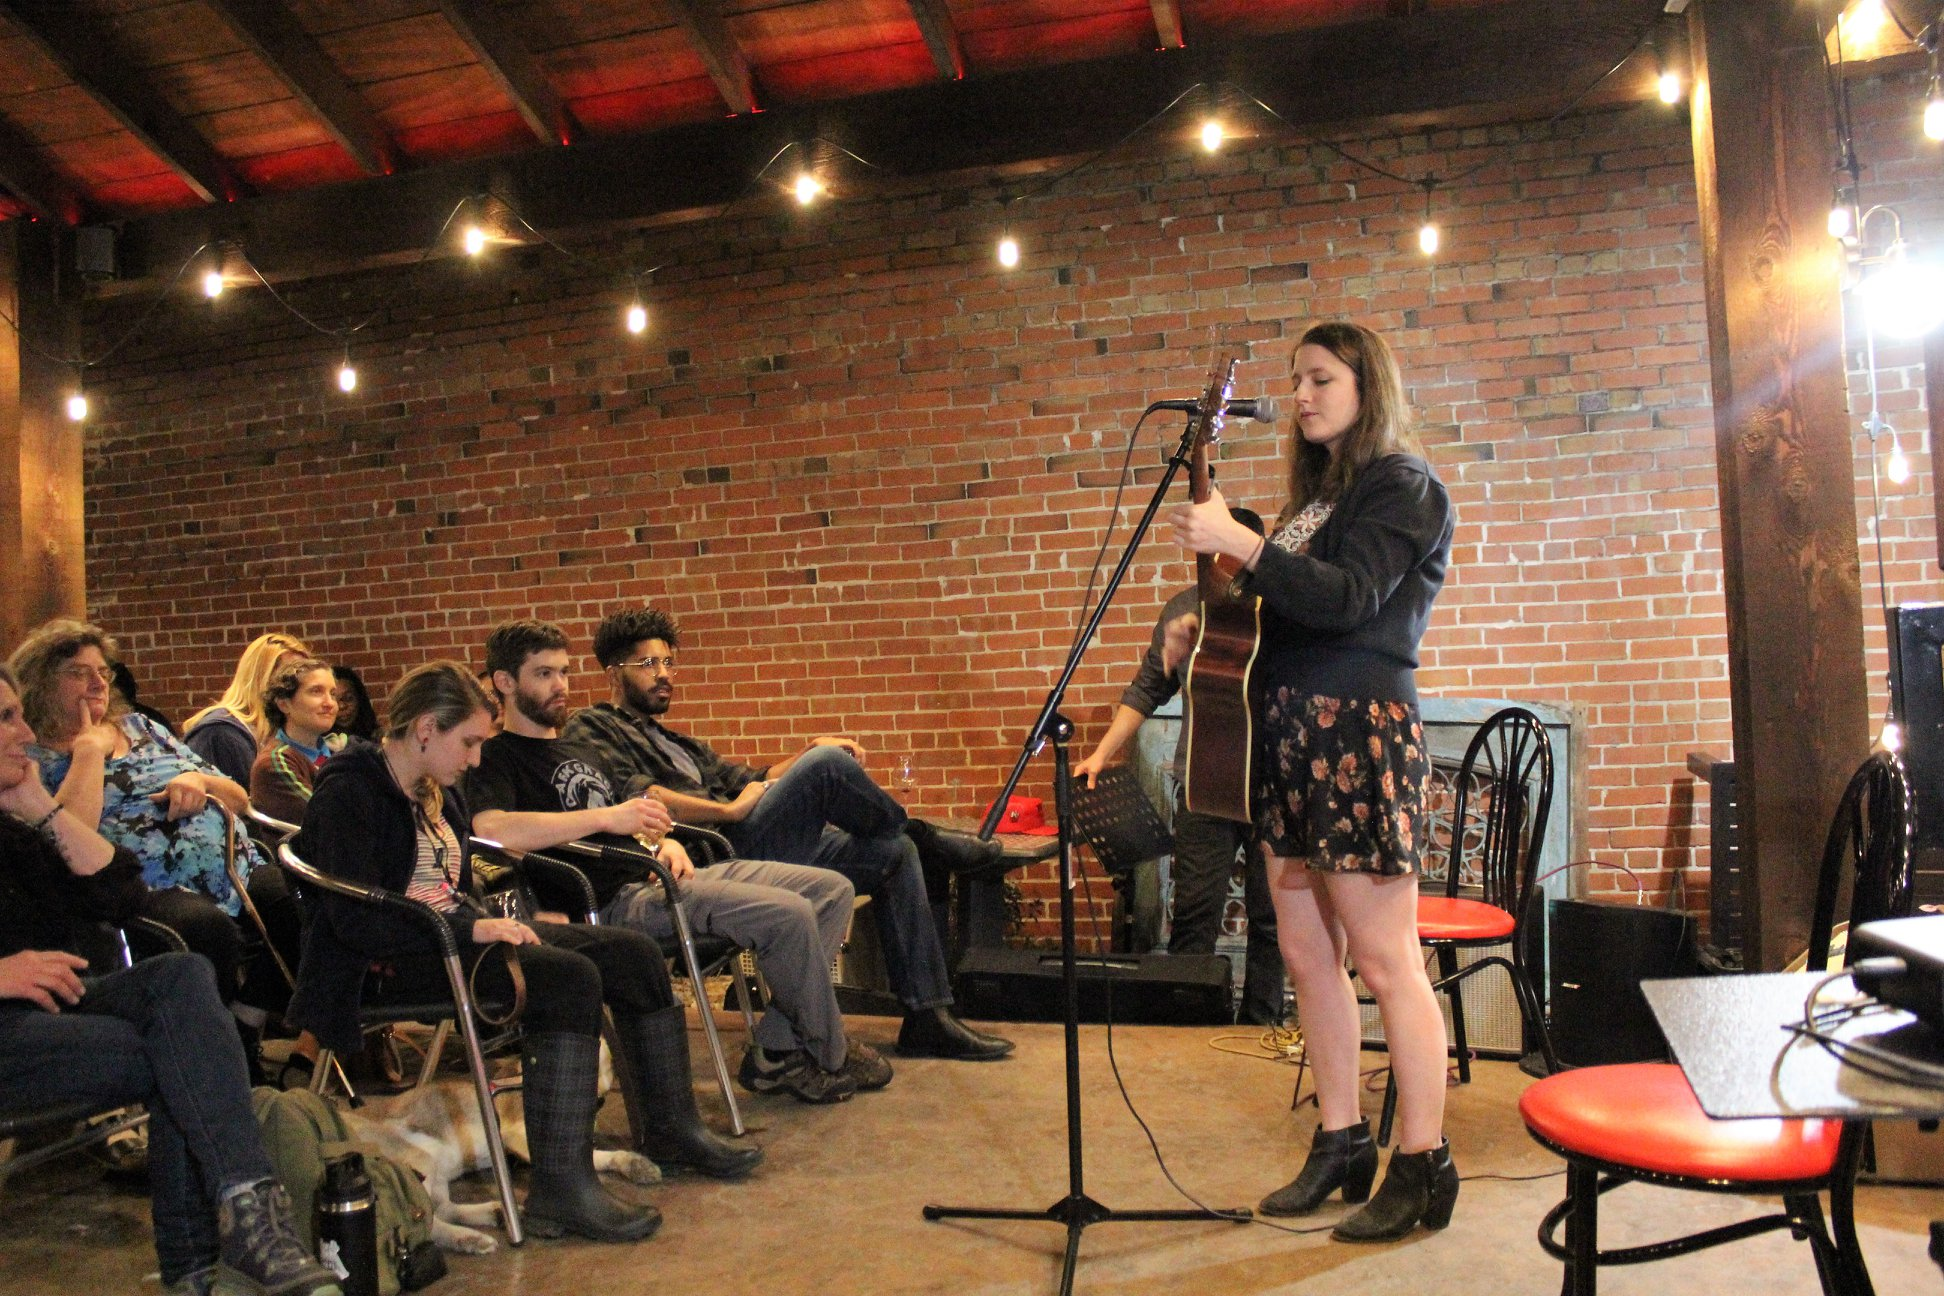 Megan Storie   music, poetry, theatre   I am a singer-songwriter based in Denton, Tx. I've had the opportunity to travel around the US playing music and hope to do more. If you are interested in collaborating or have booking inquiries you can email me at  meganstorie@gmail.com .   Instagram  |  Facebook  |  Bandcamp